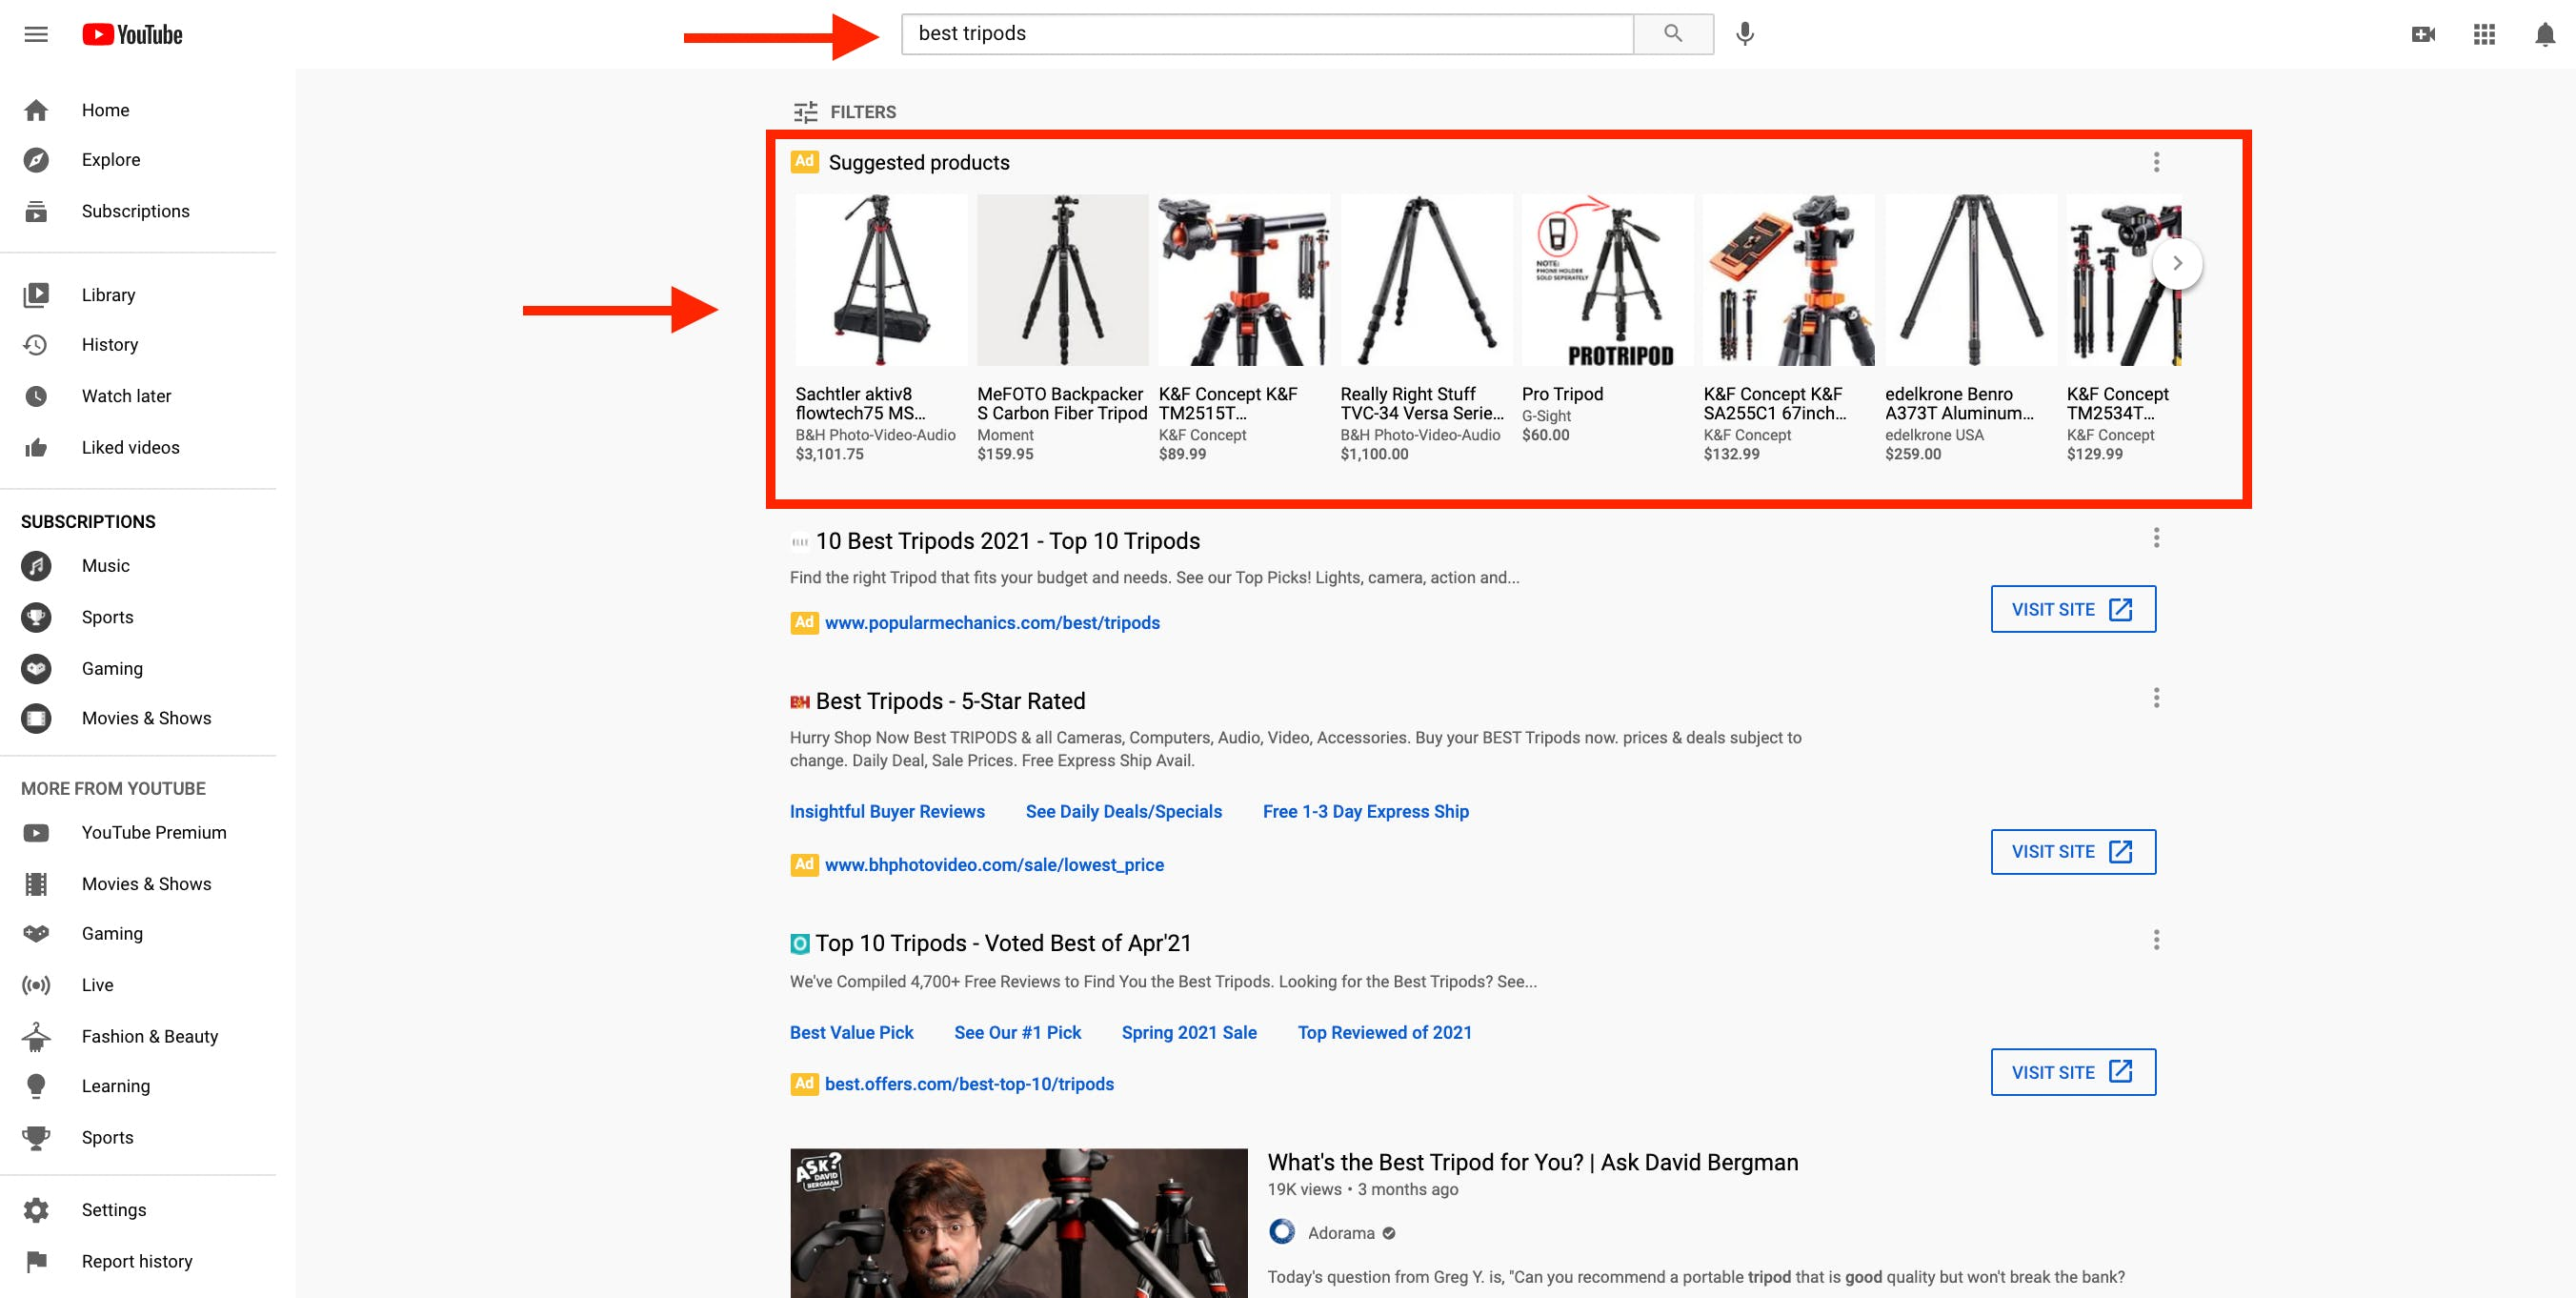 Product image ad results for a purchase focused keyword on YouTube